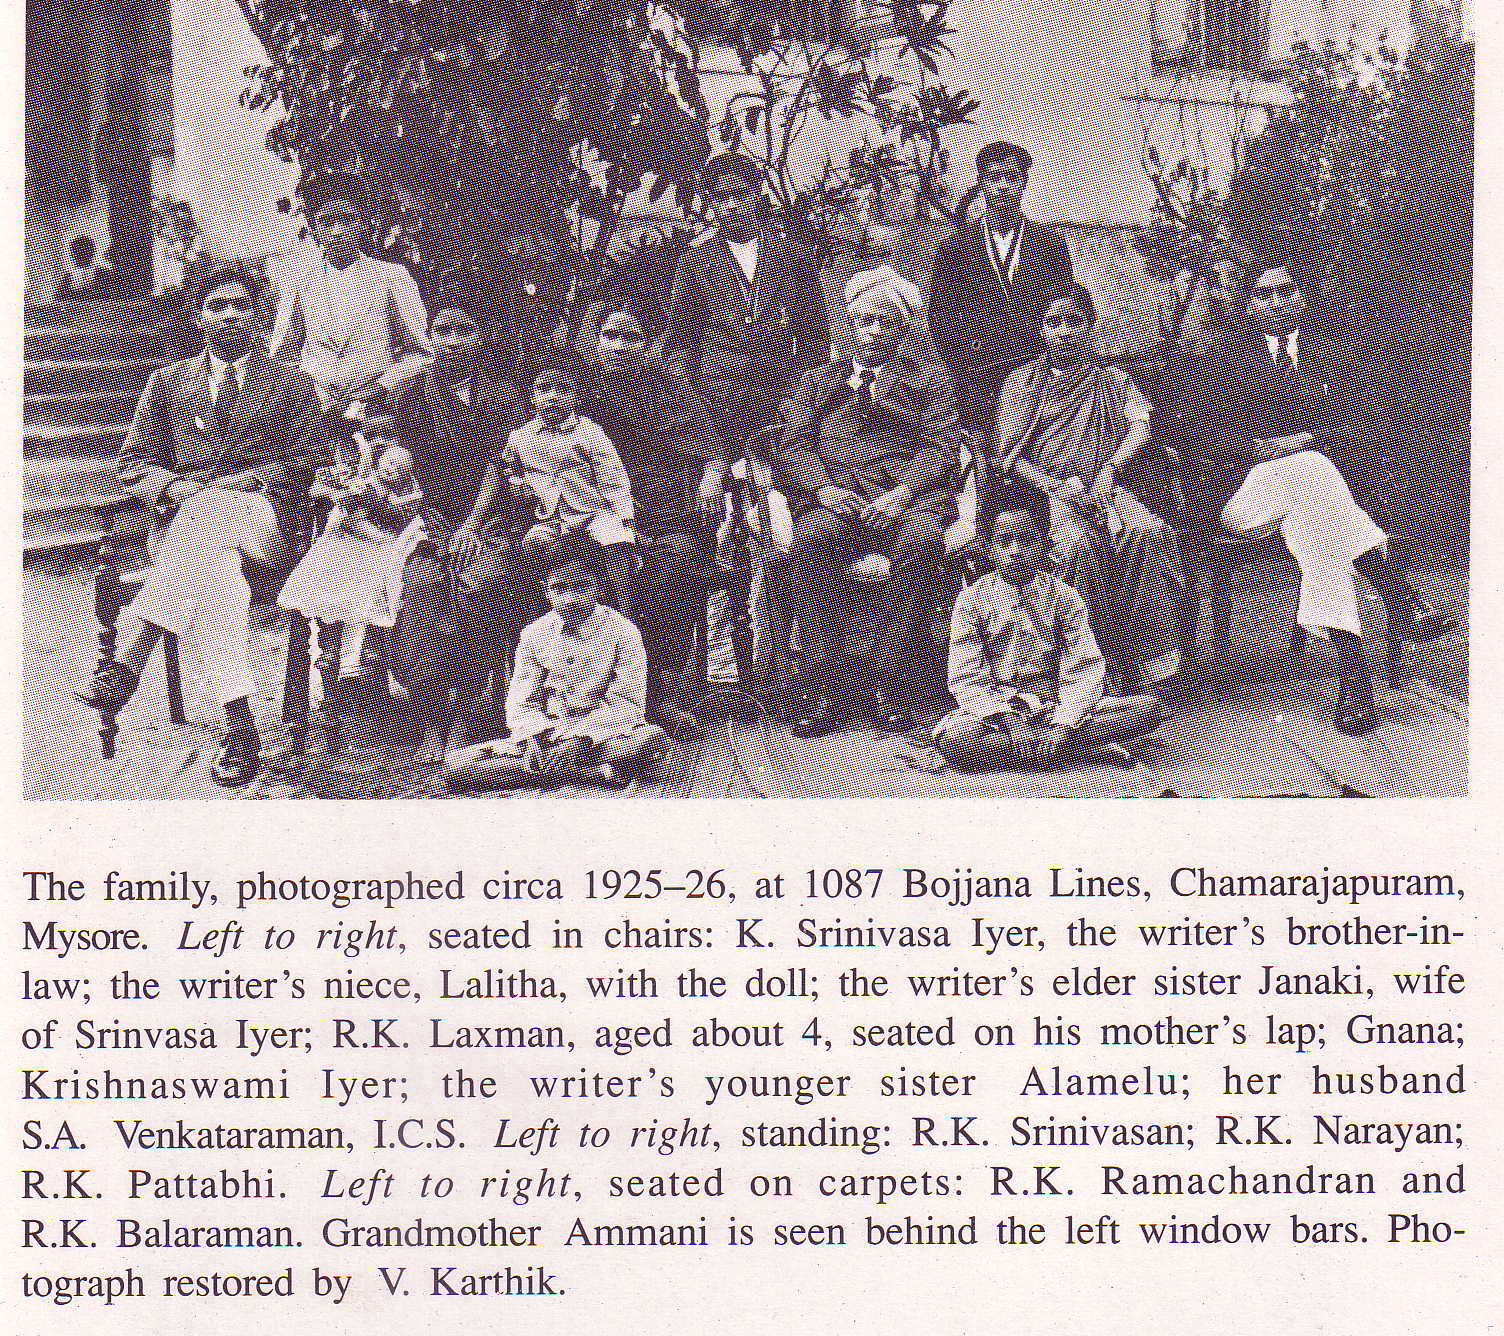 R.K.Laxman and his siblings 1925-26